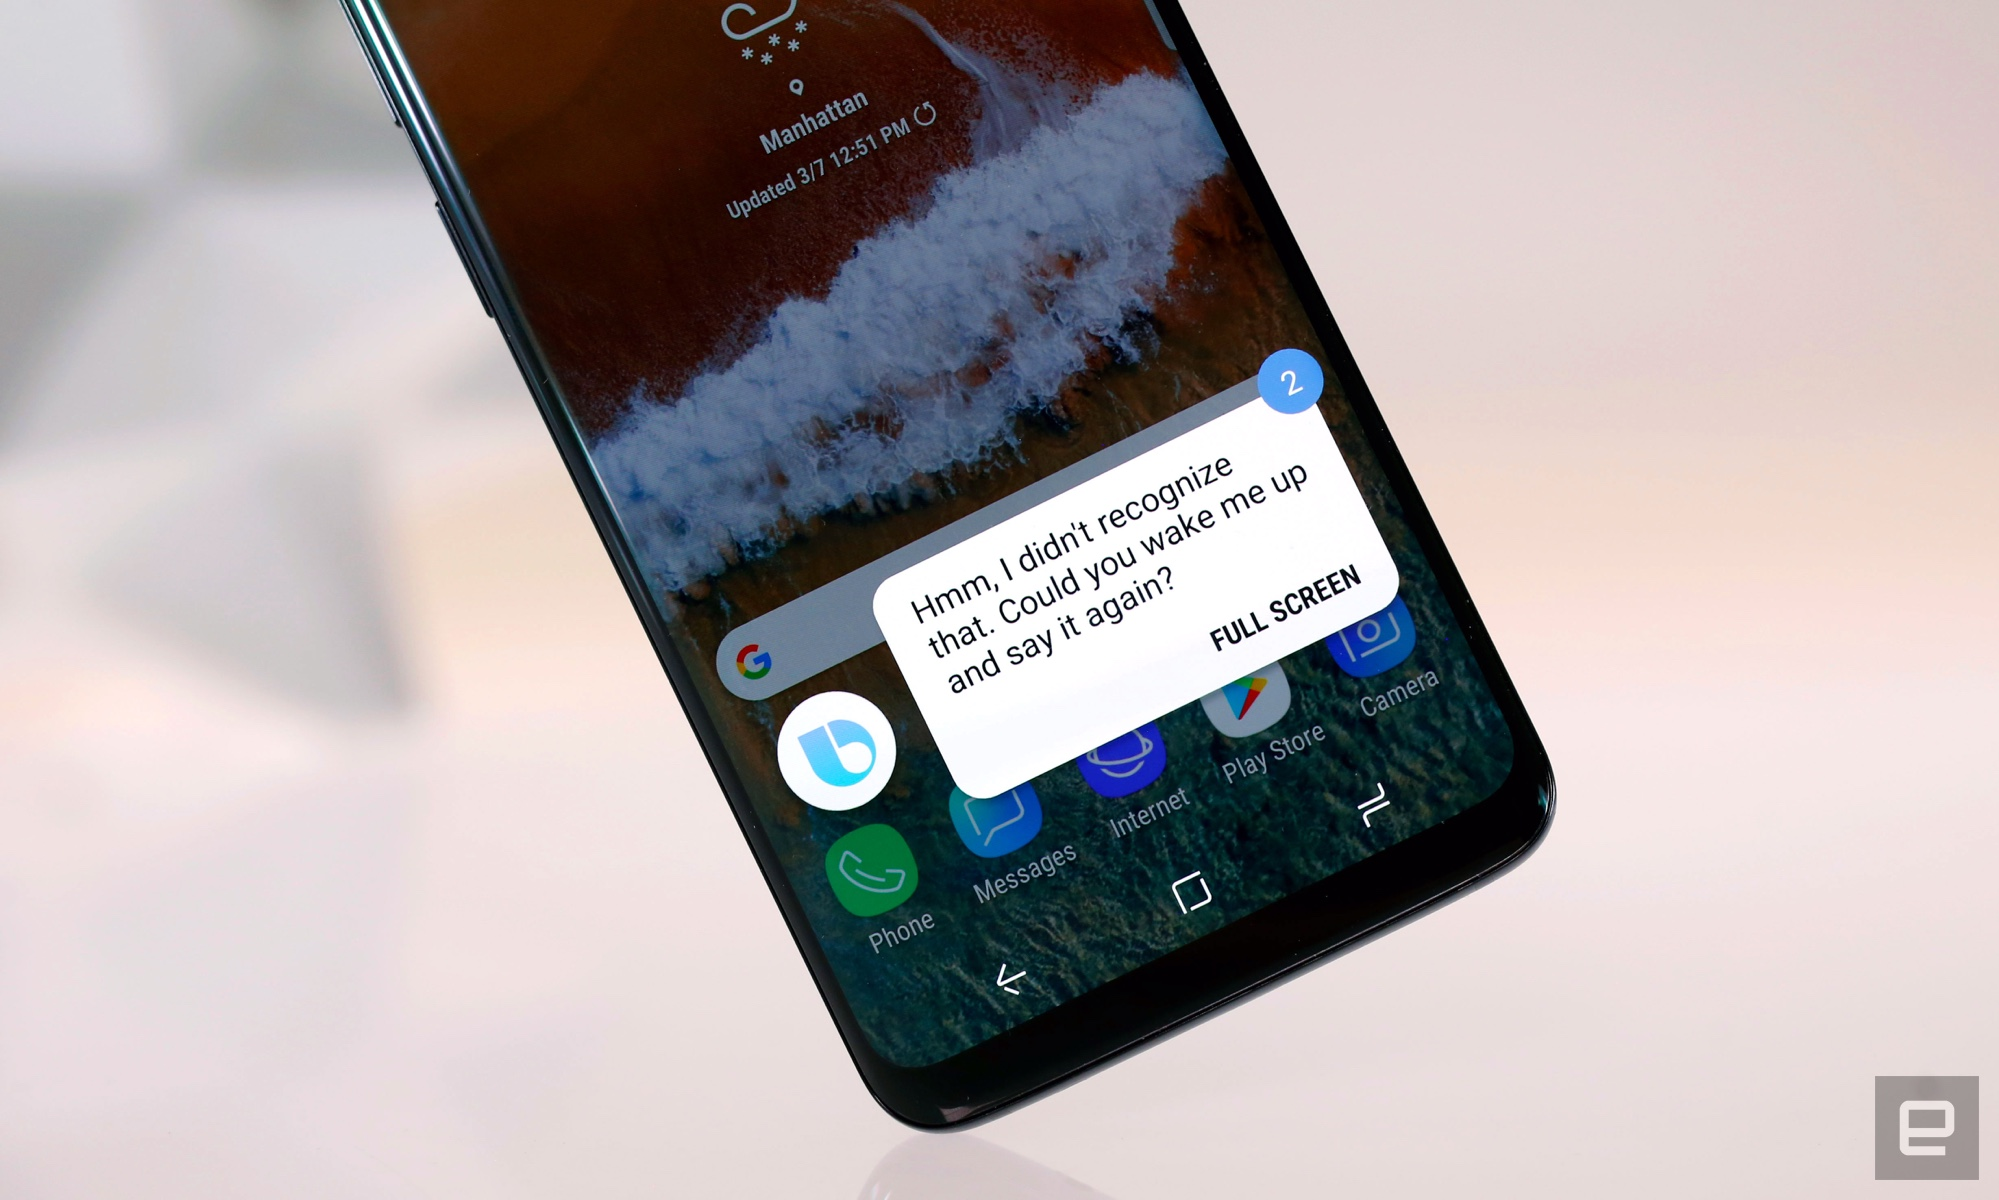 One year later, Bixby is still half-baked